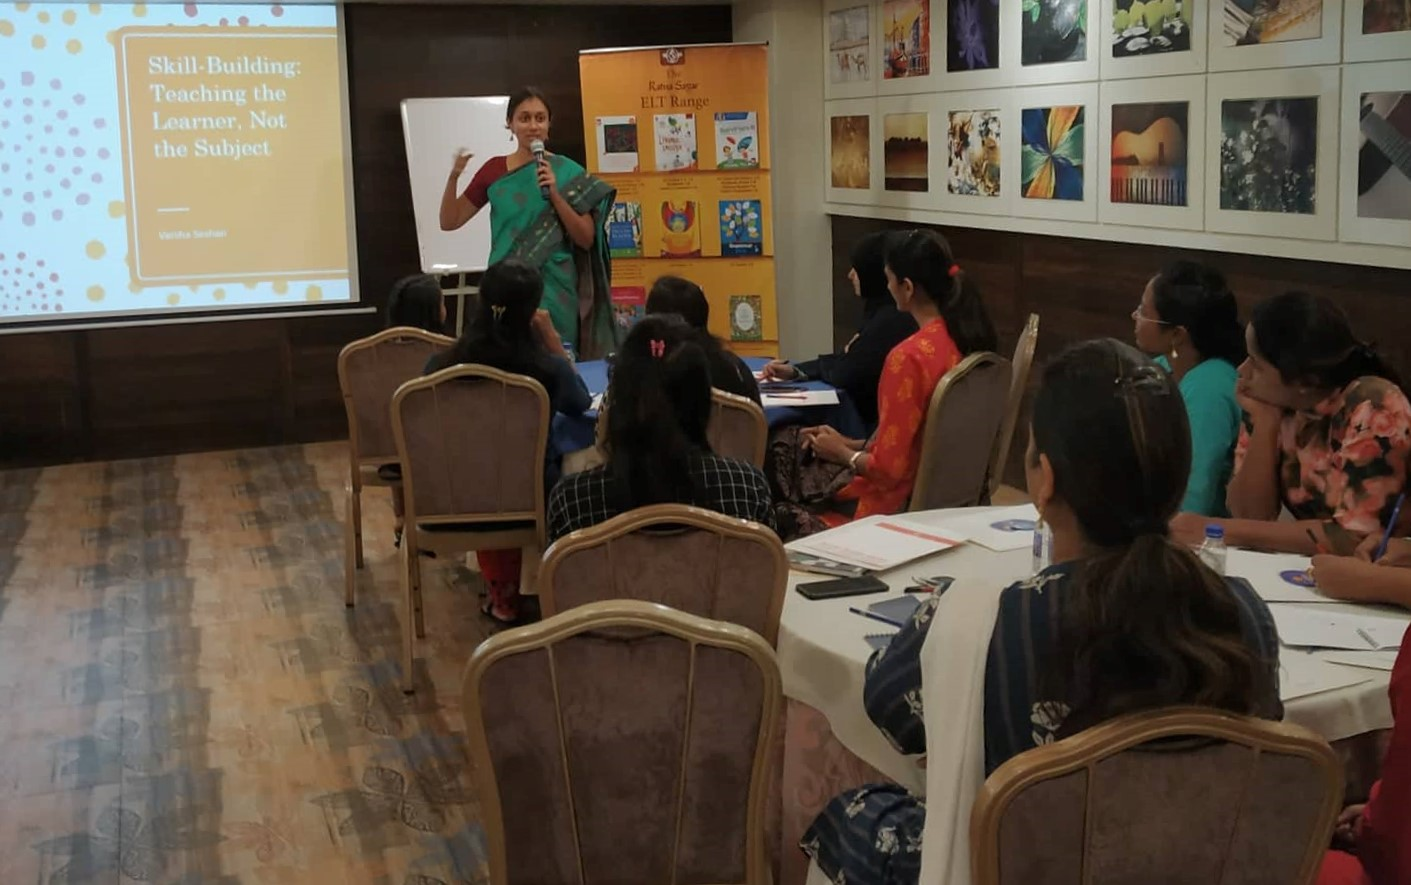 Varsha Seshan speaking on the mic to a group of teachers. In the background, a presentation that says 'Skill-Building: Teaching the Learner, Not the Subject'